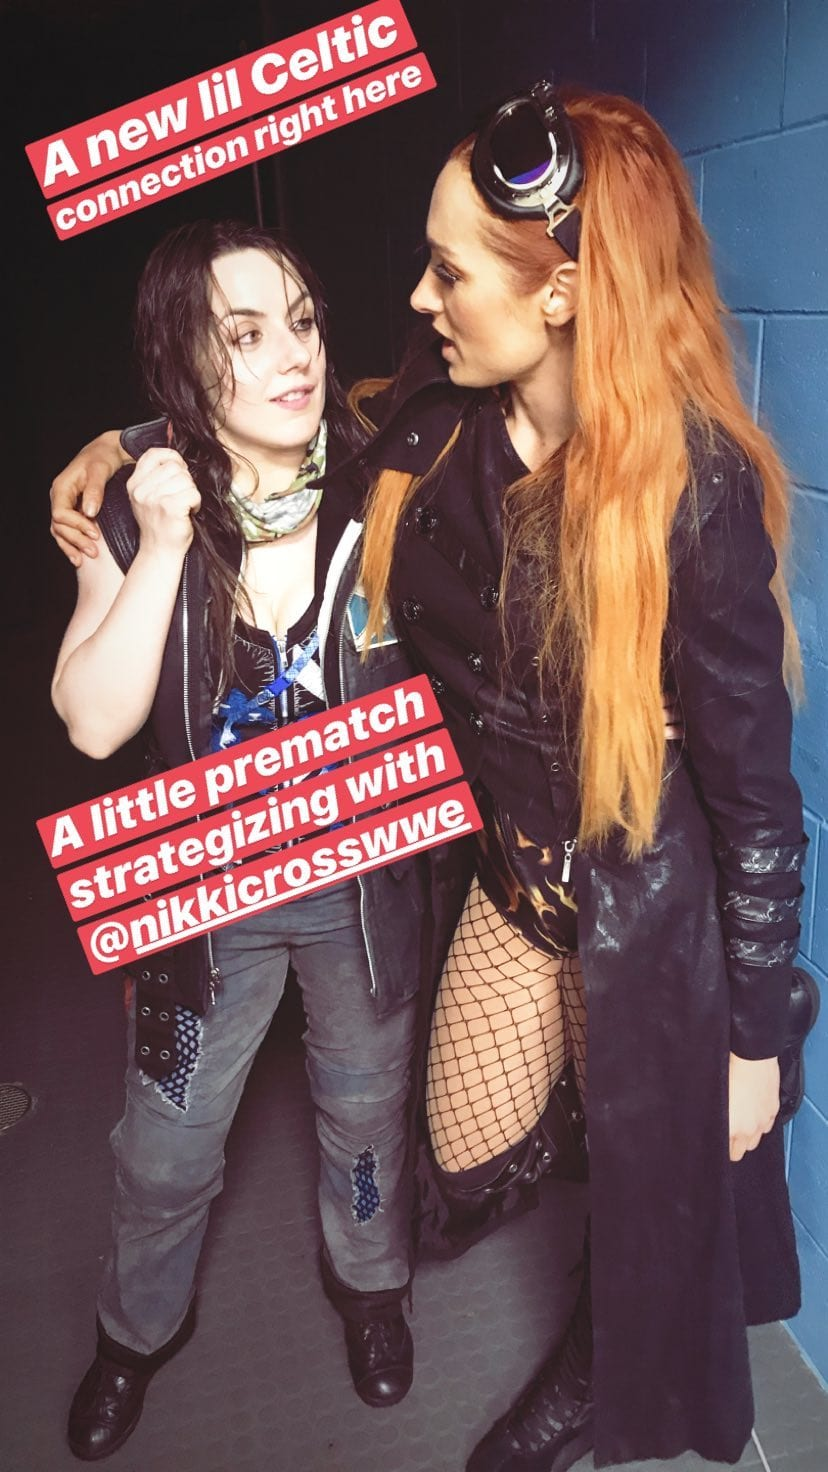 Nikki Cross Teams Up With Becky Lynch At SmackDown Live Event - 1